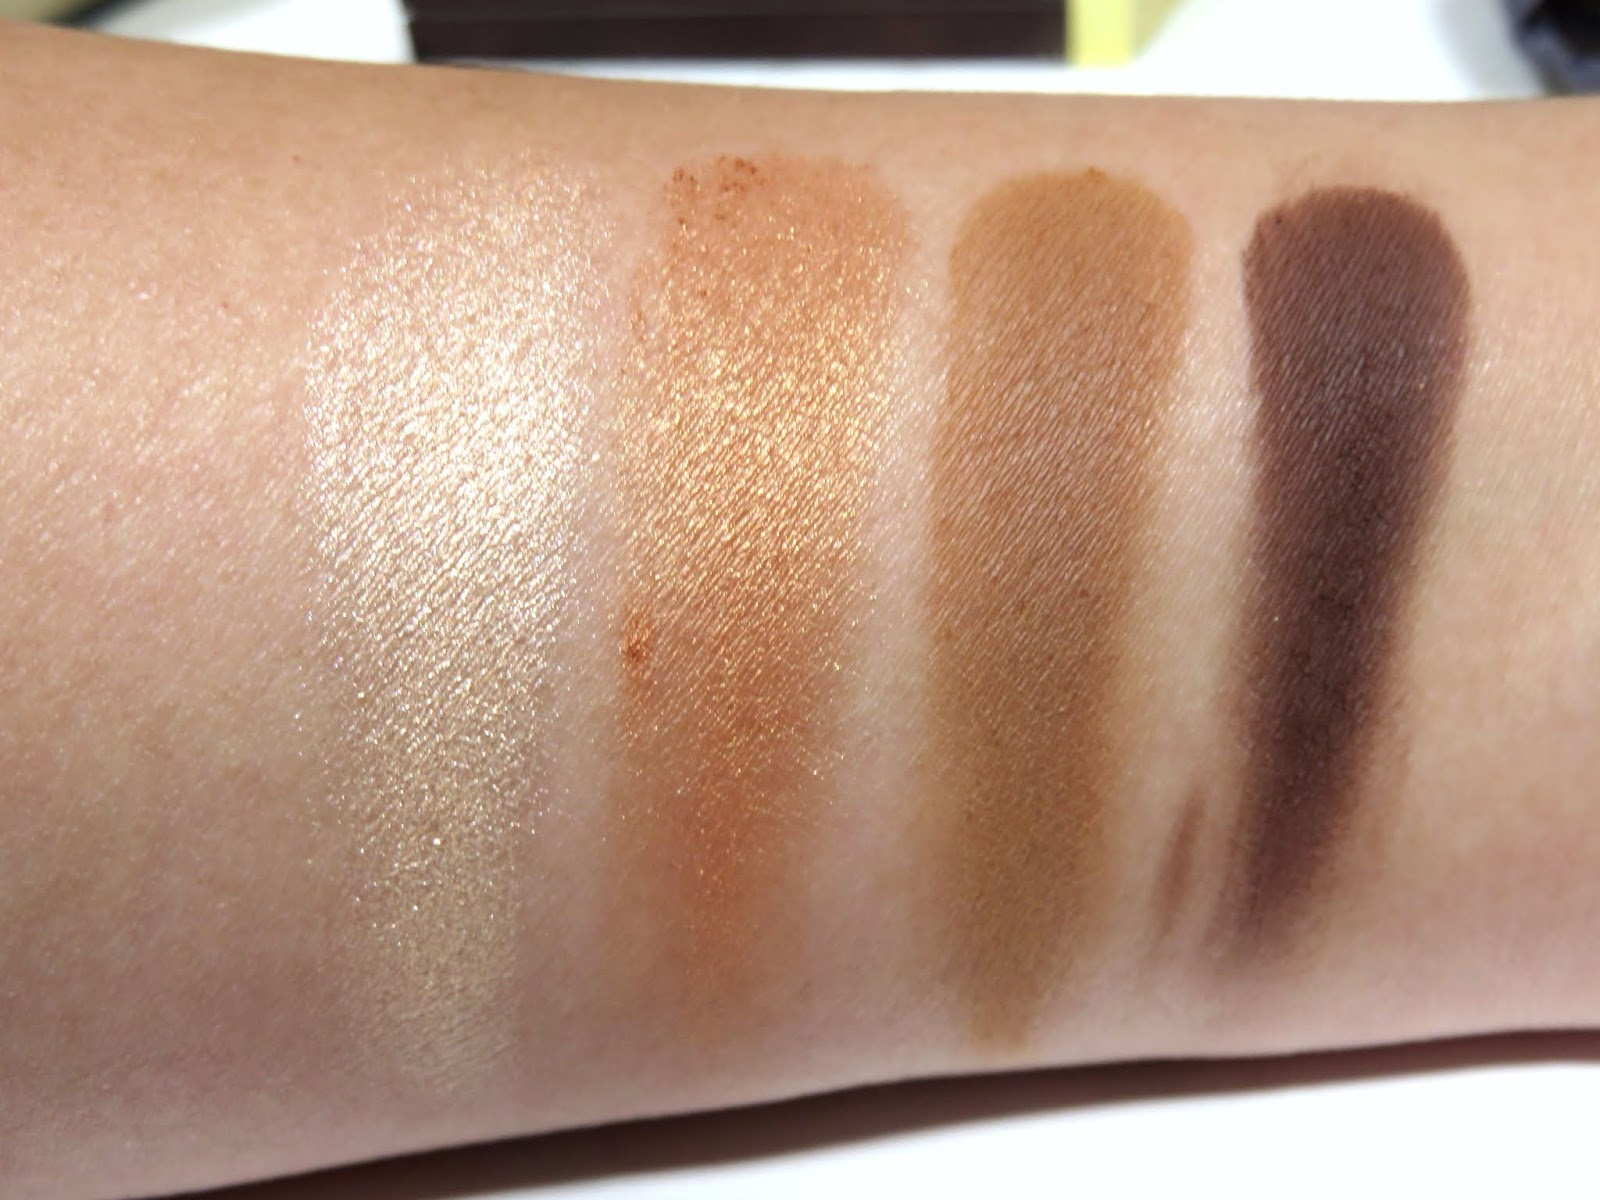 Tom Ford De La Creme Eye Color Quad Swatches